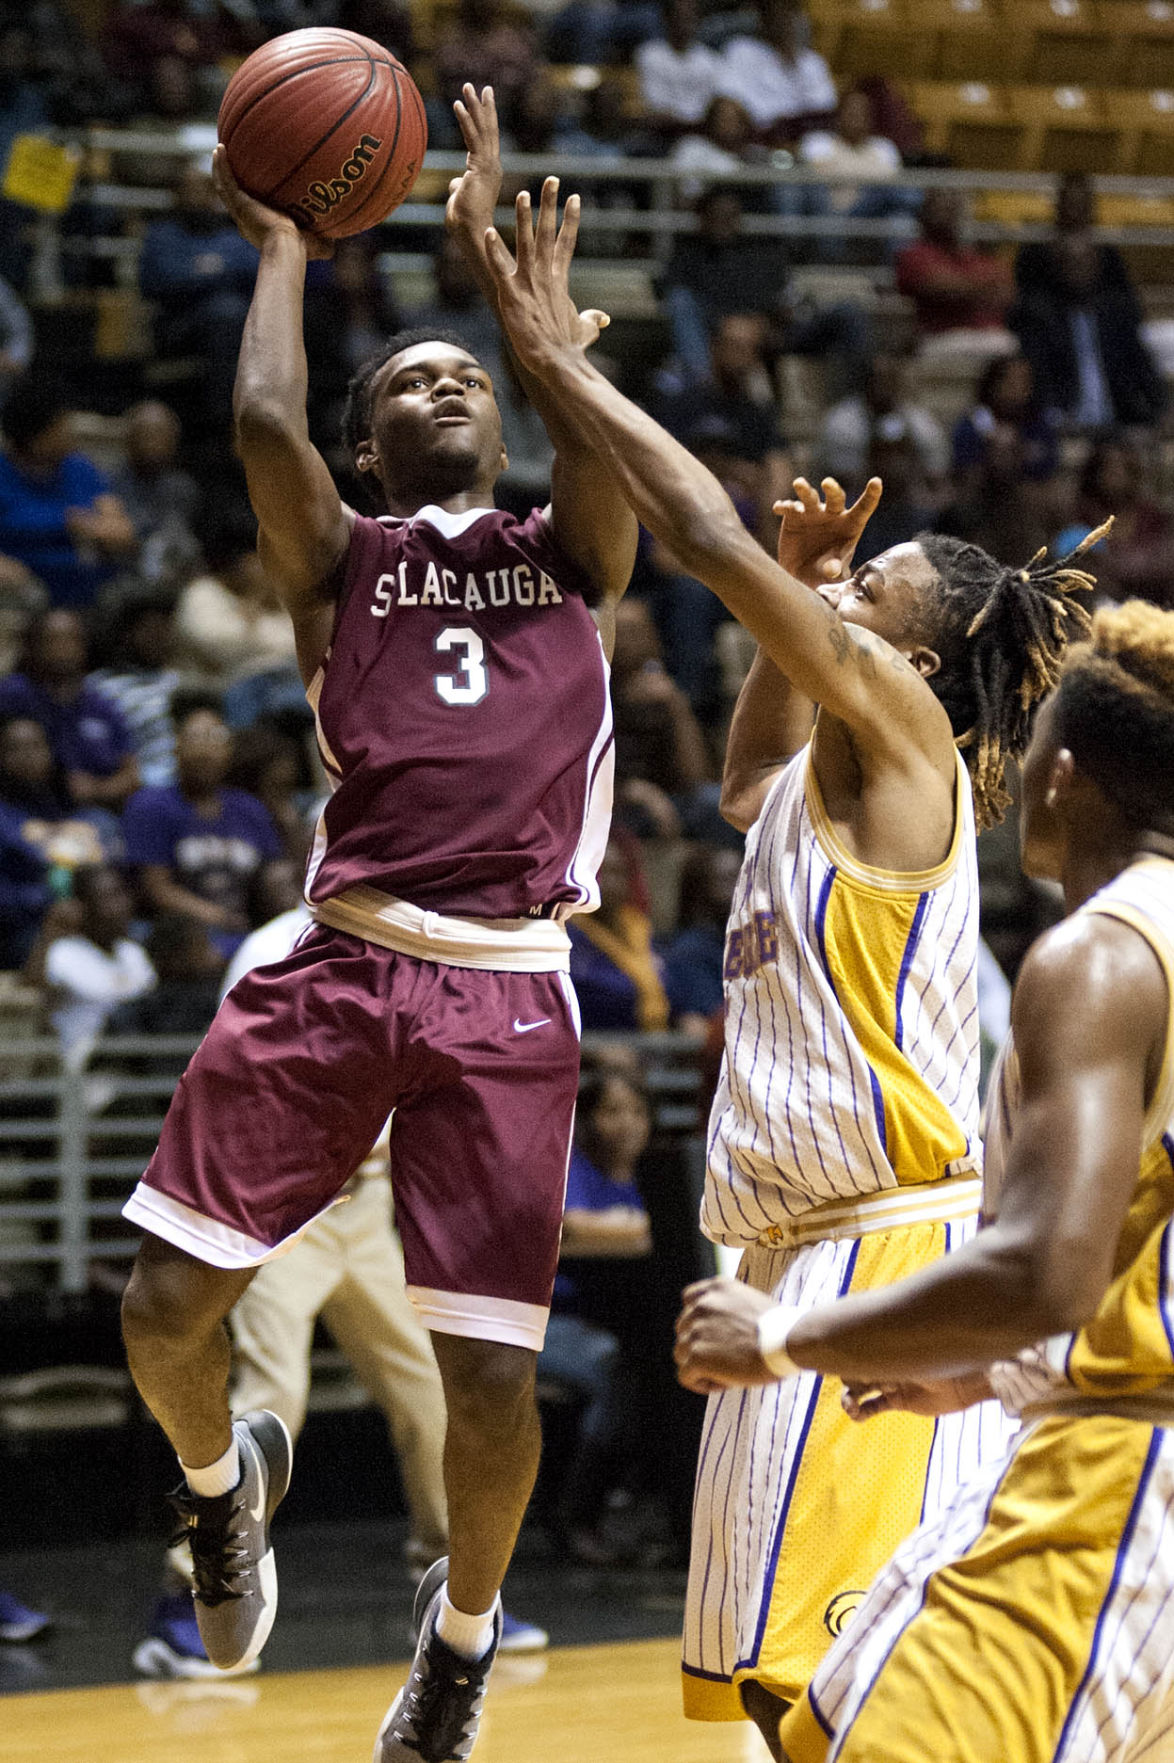 UPDATED: Sylacauga boys used 2nd-quarter surge to pull away en route to region title, Final Four berth (with photos)